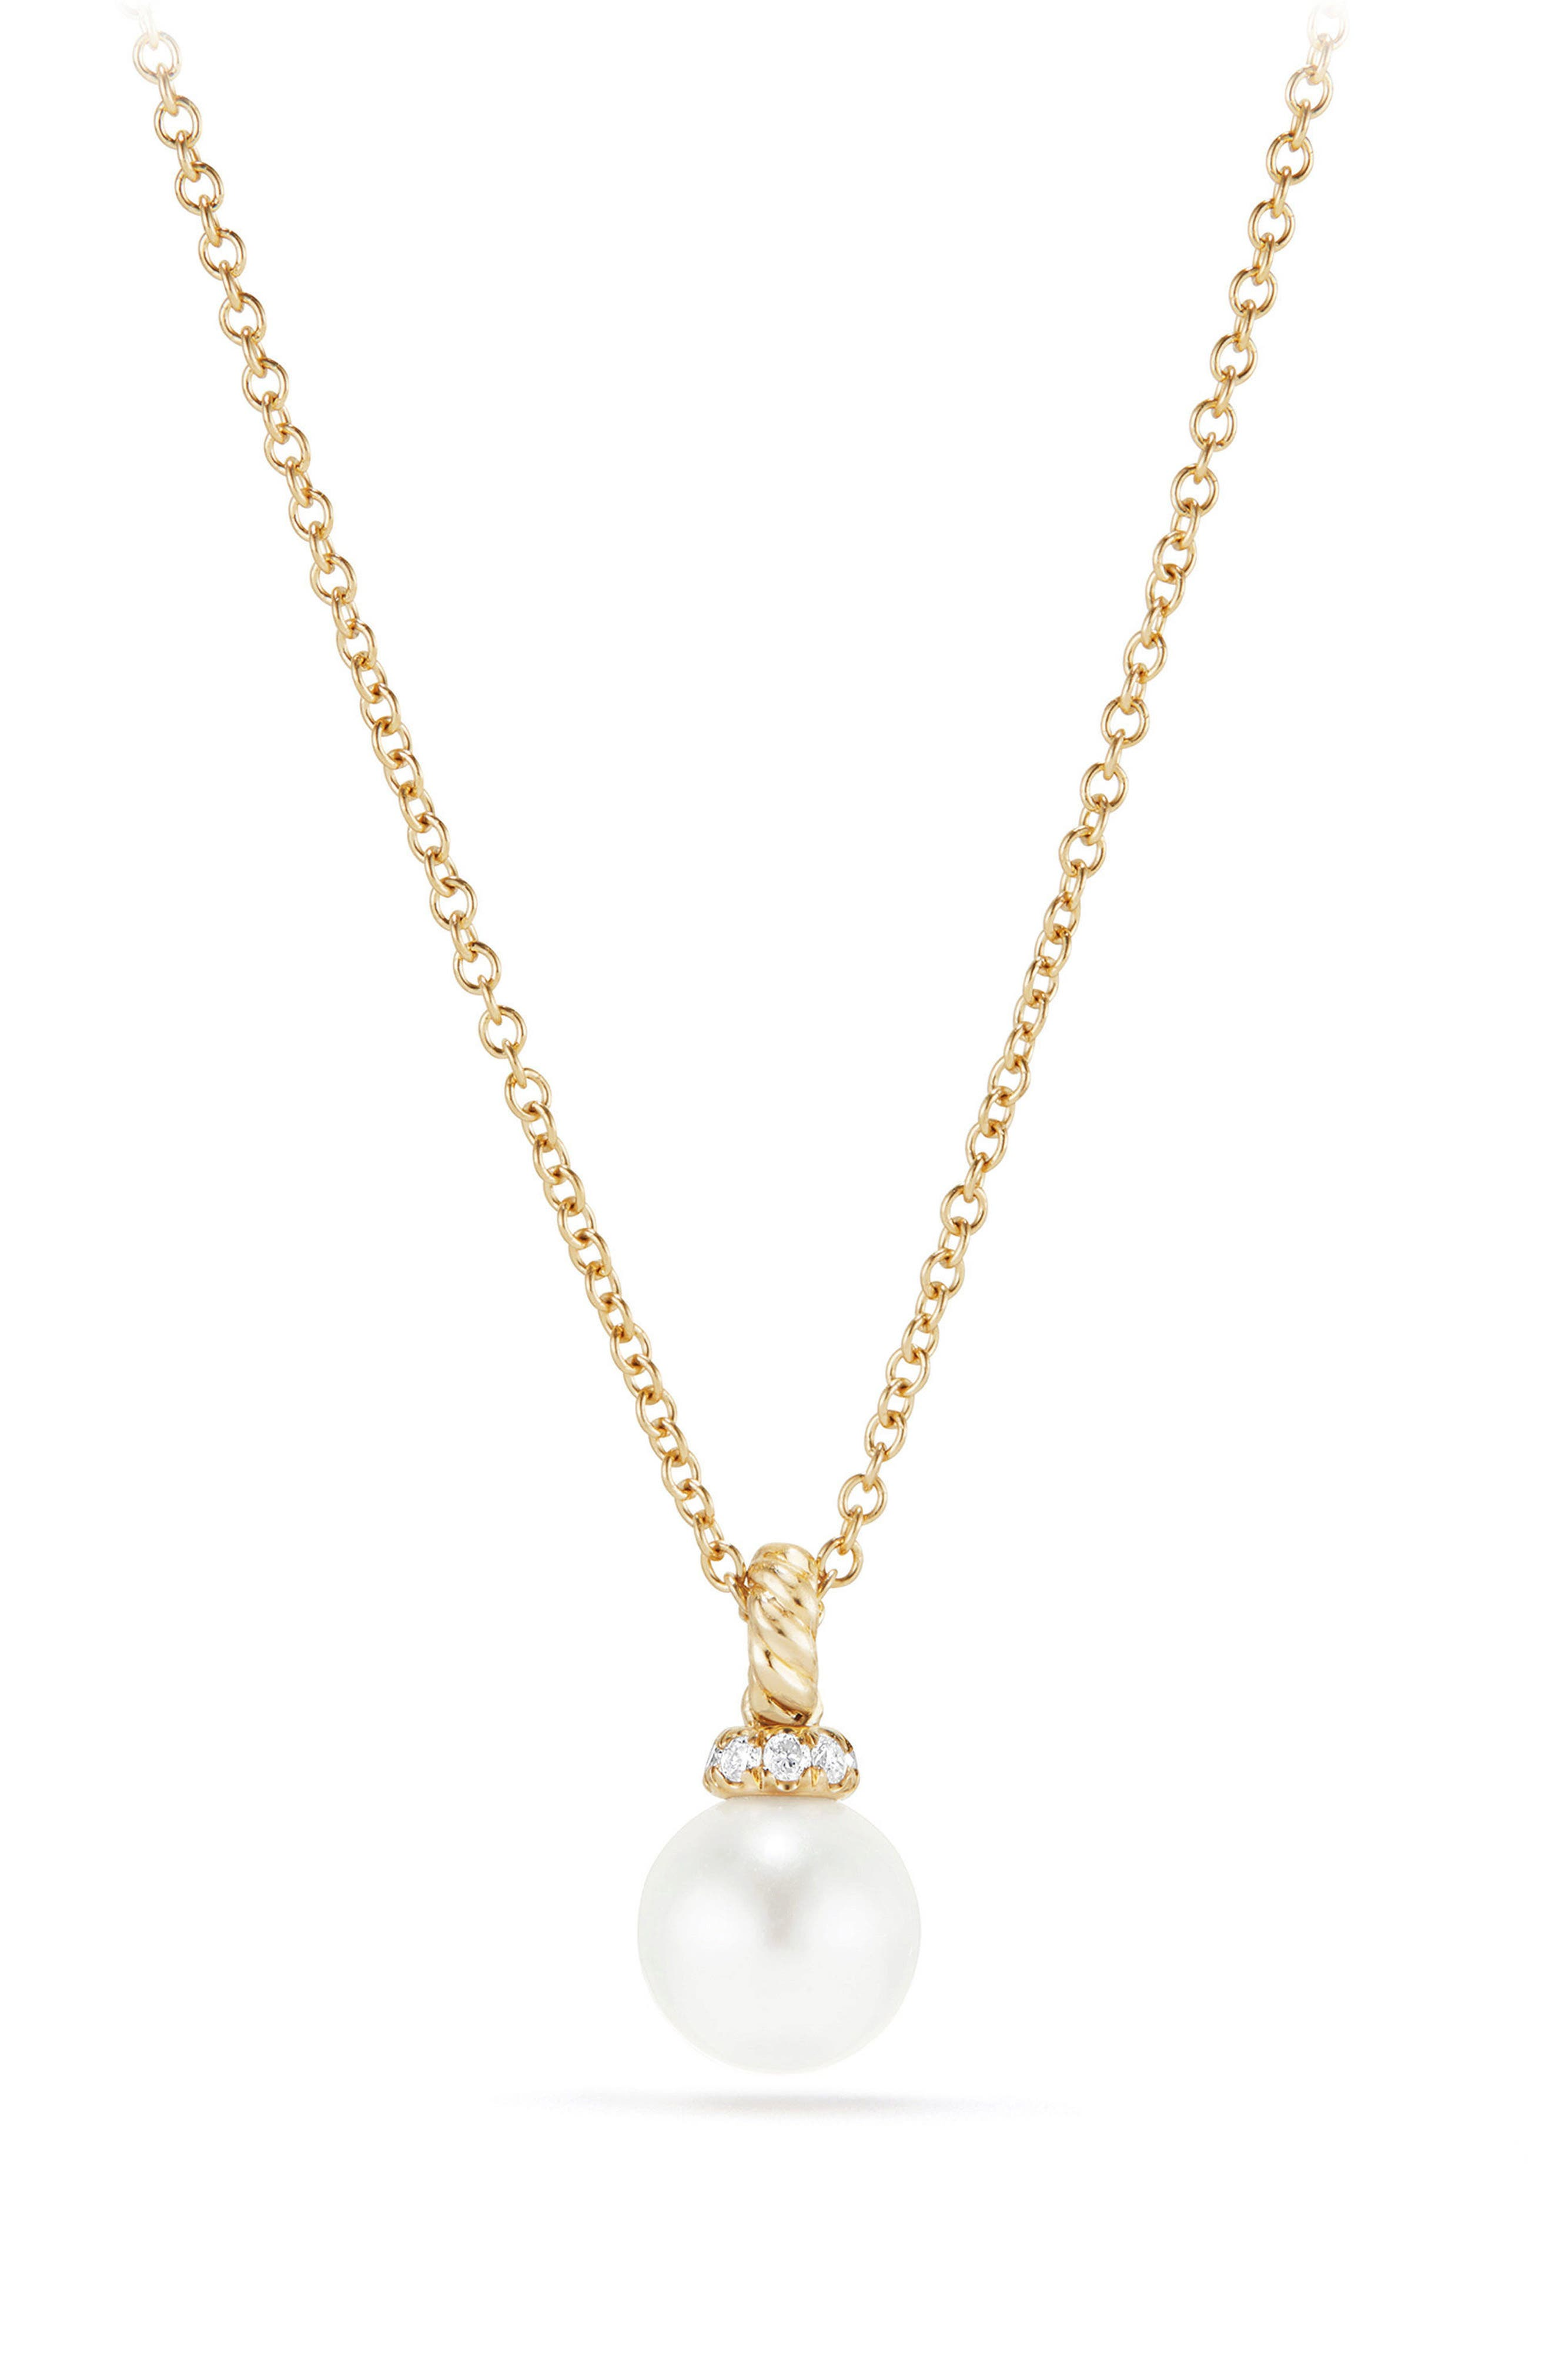 Solari Pendant Necklace with Pearl & Diamonds in 18K Gold,                         Main,                         color, Yellow Gold/ Diamond/ Pearl